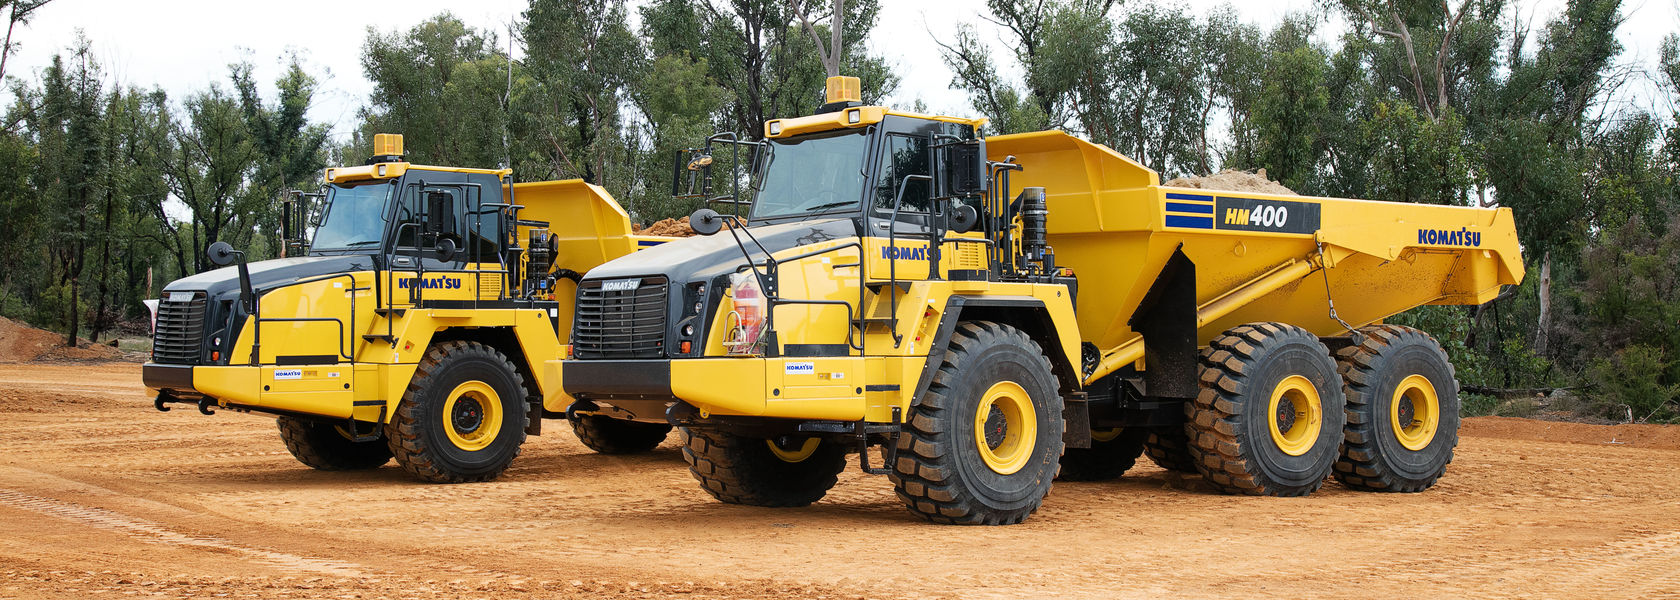 Komatsu Launches Two New Articulated Dump Trucks Mining Magazine